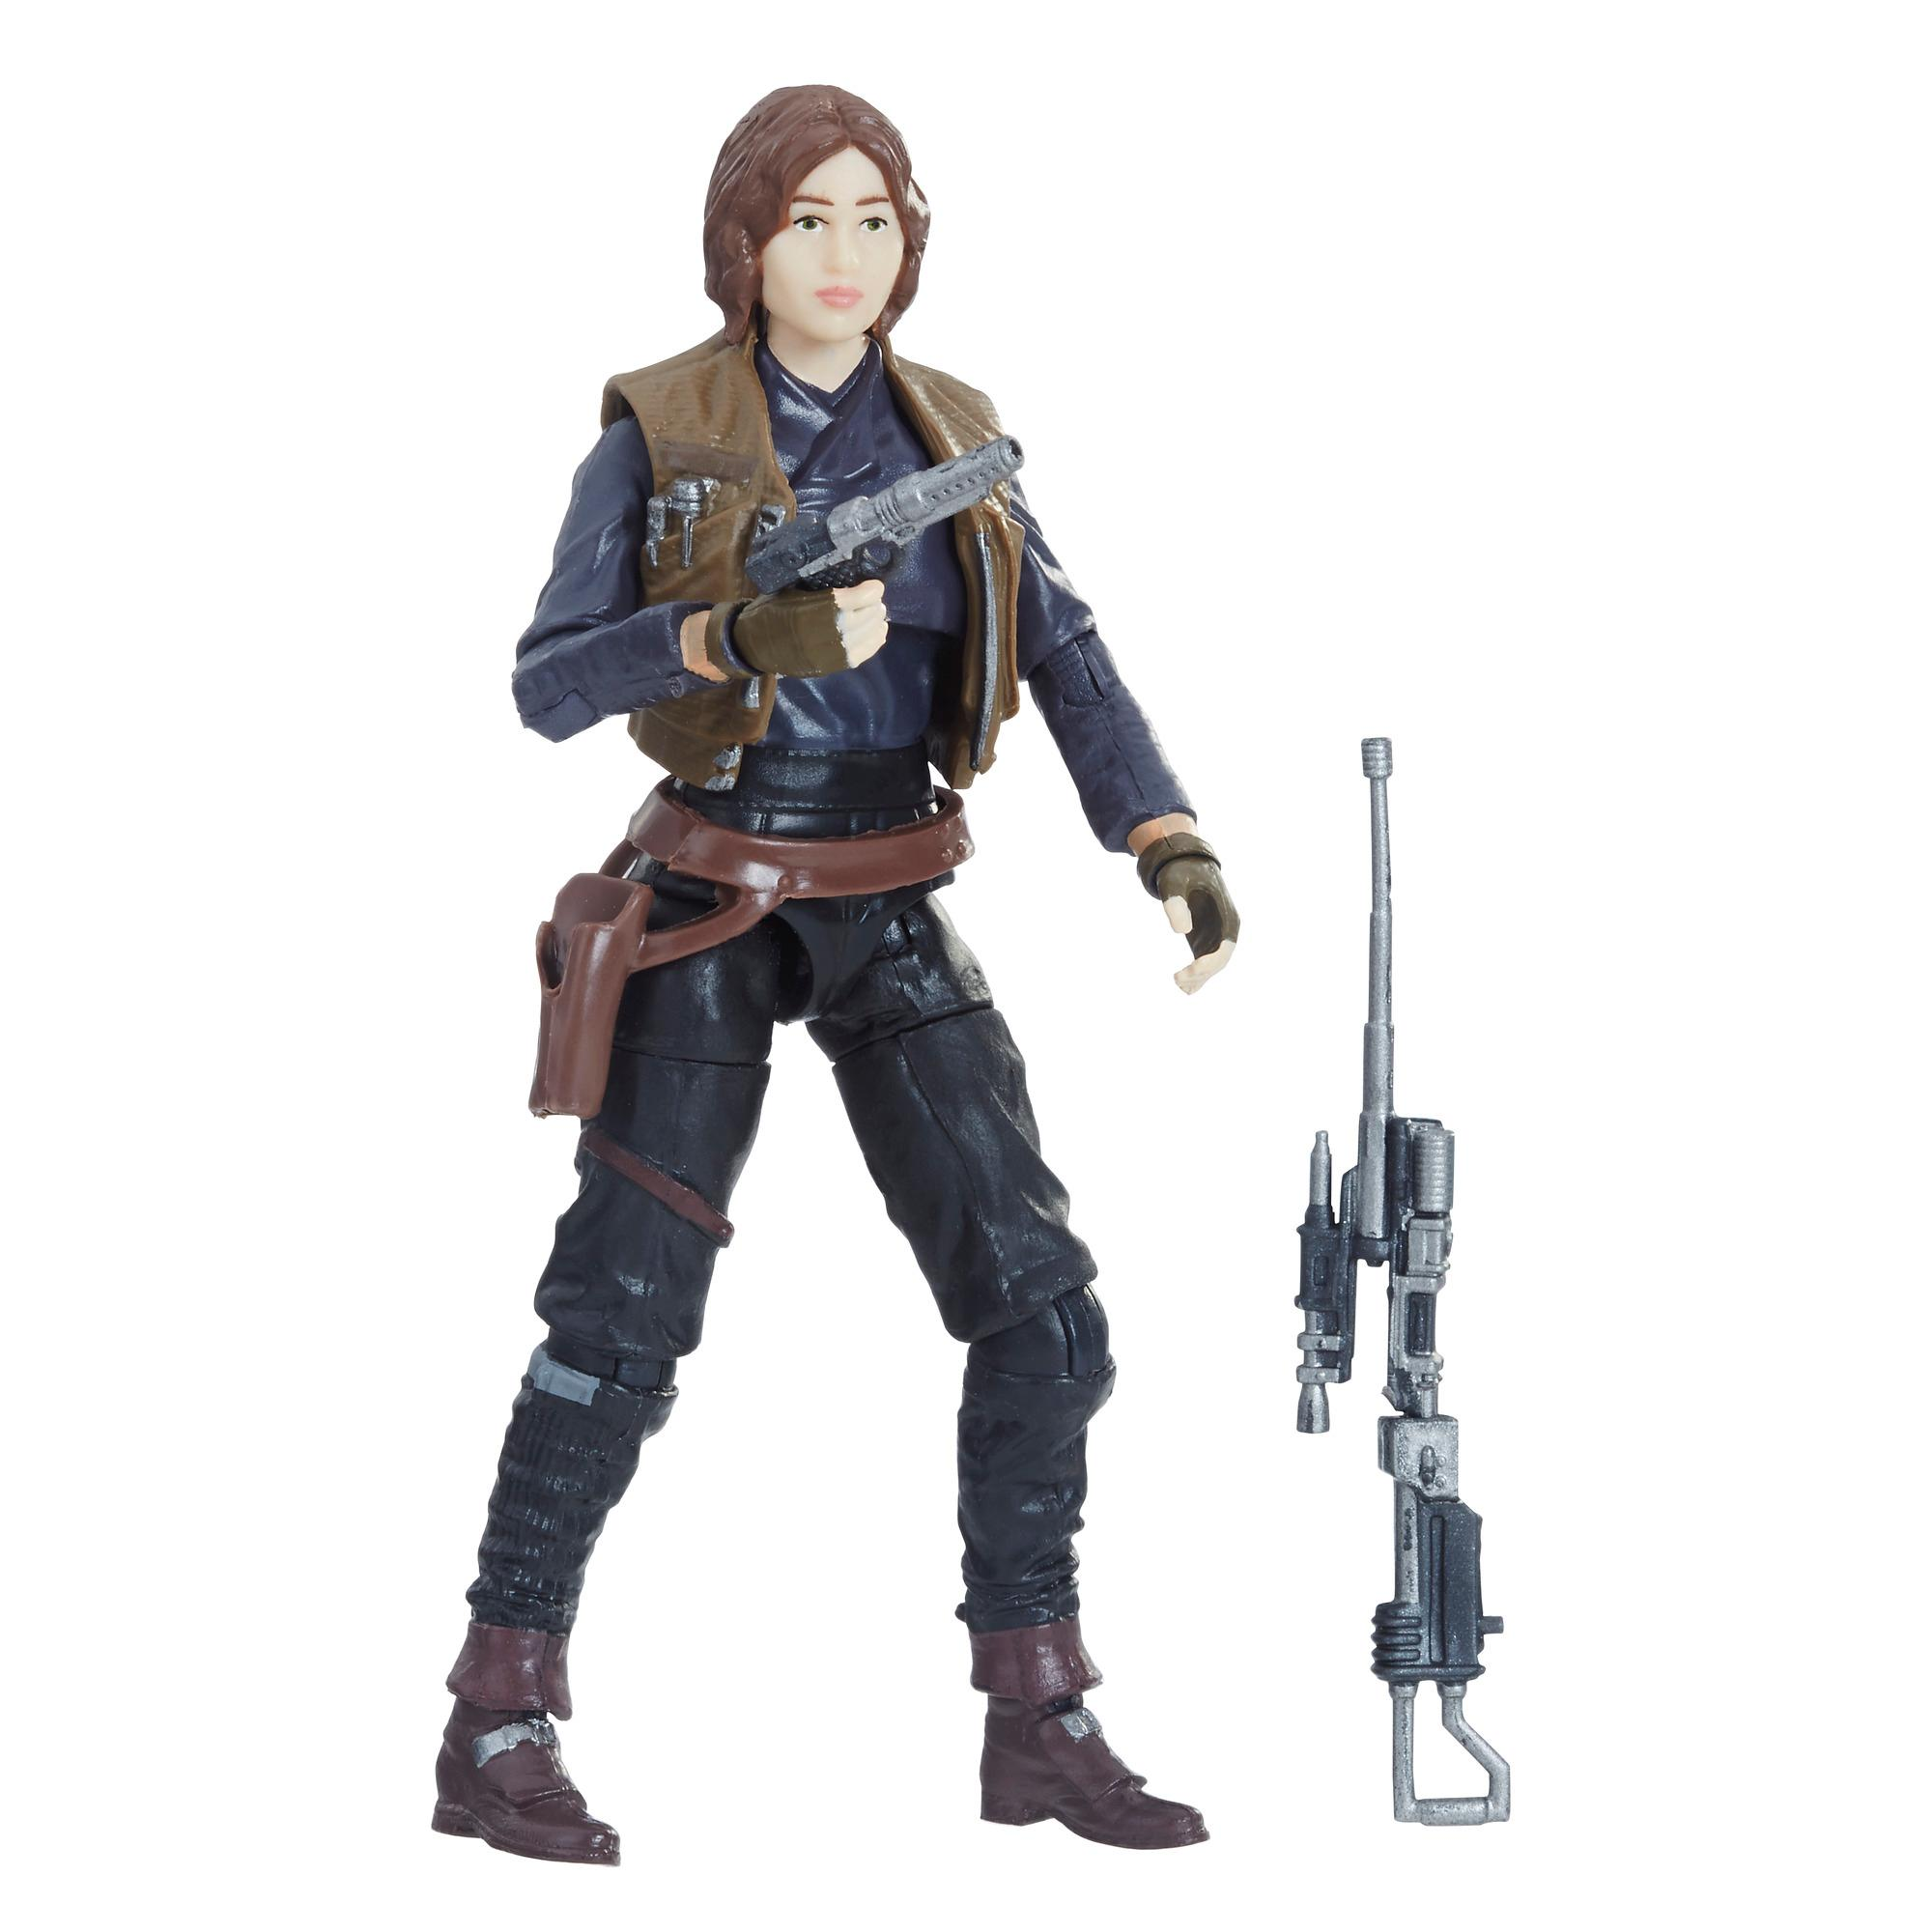 Star Wars The Vintage Collection Jyn Erso 3.75-inch Figure